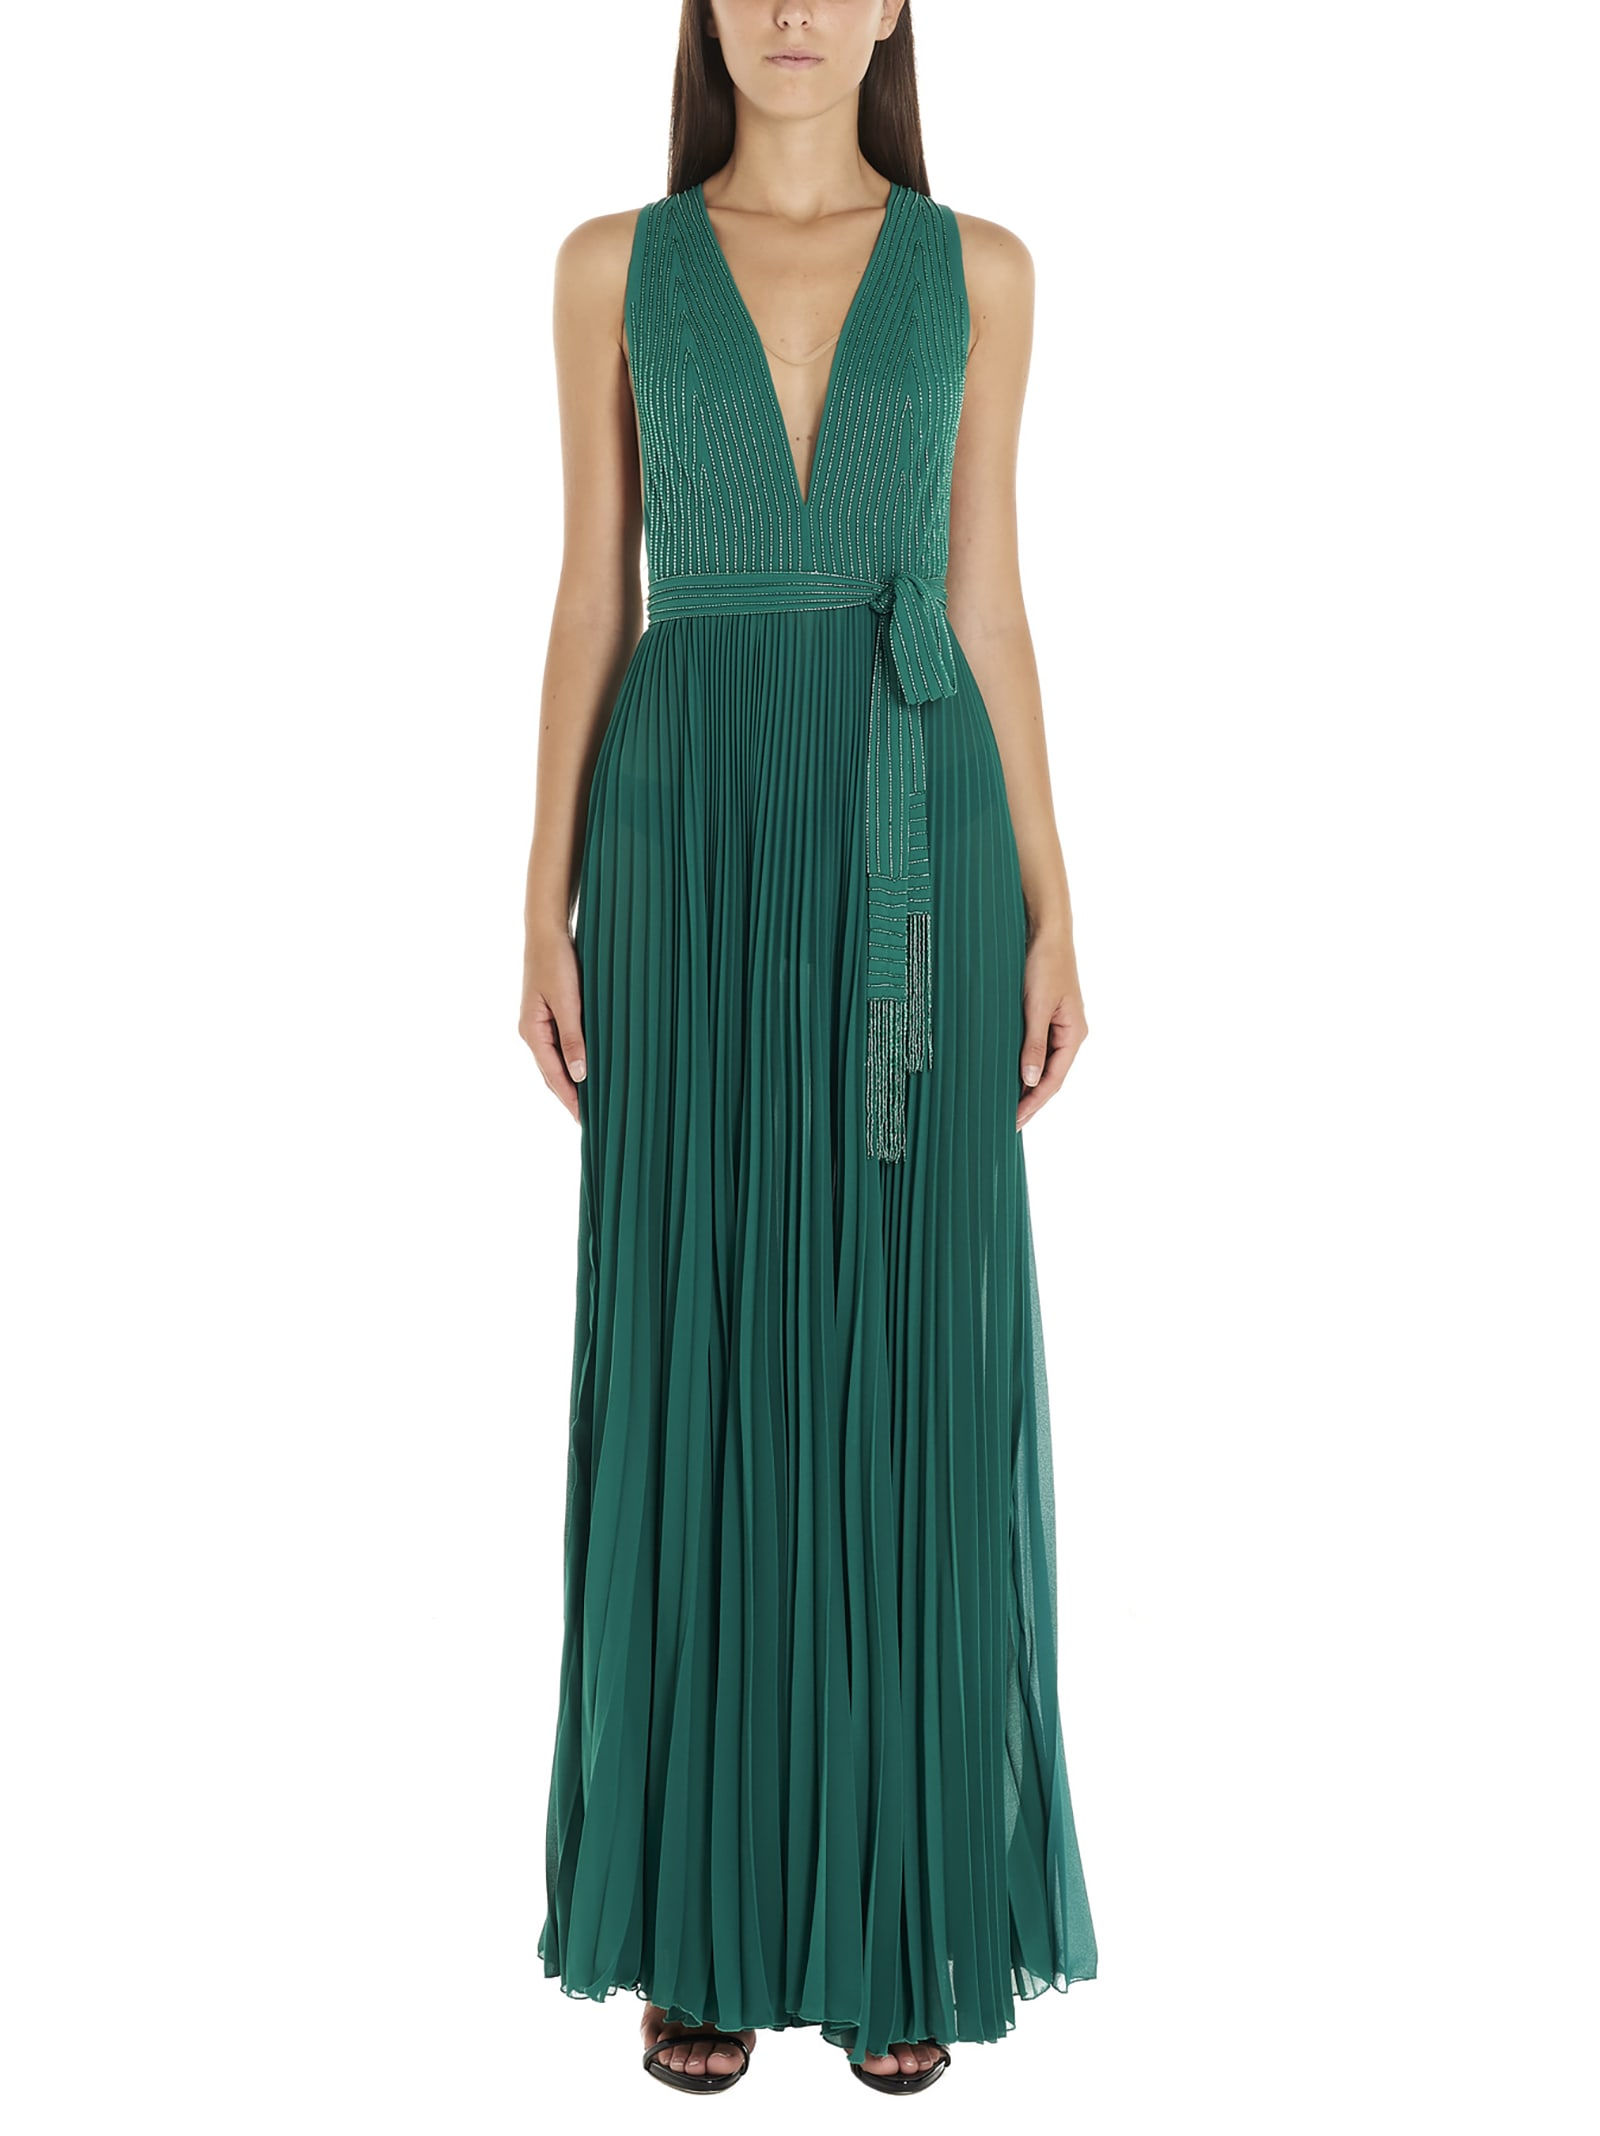 Elisabetta Franchi Celyn B. red Carpet Dress